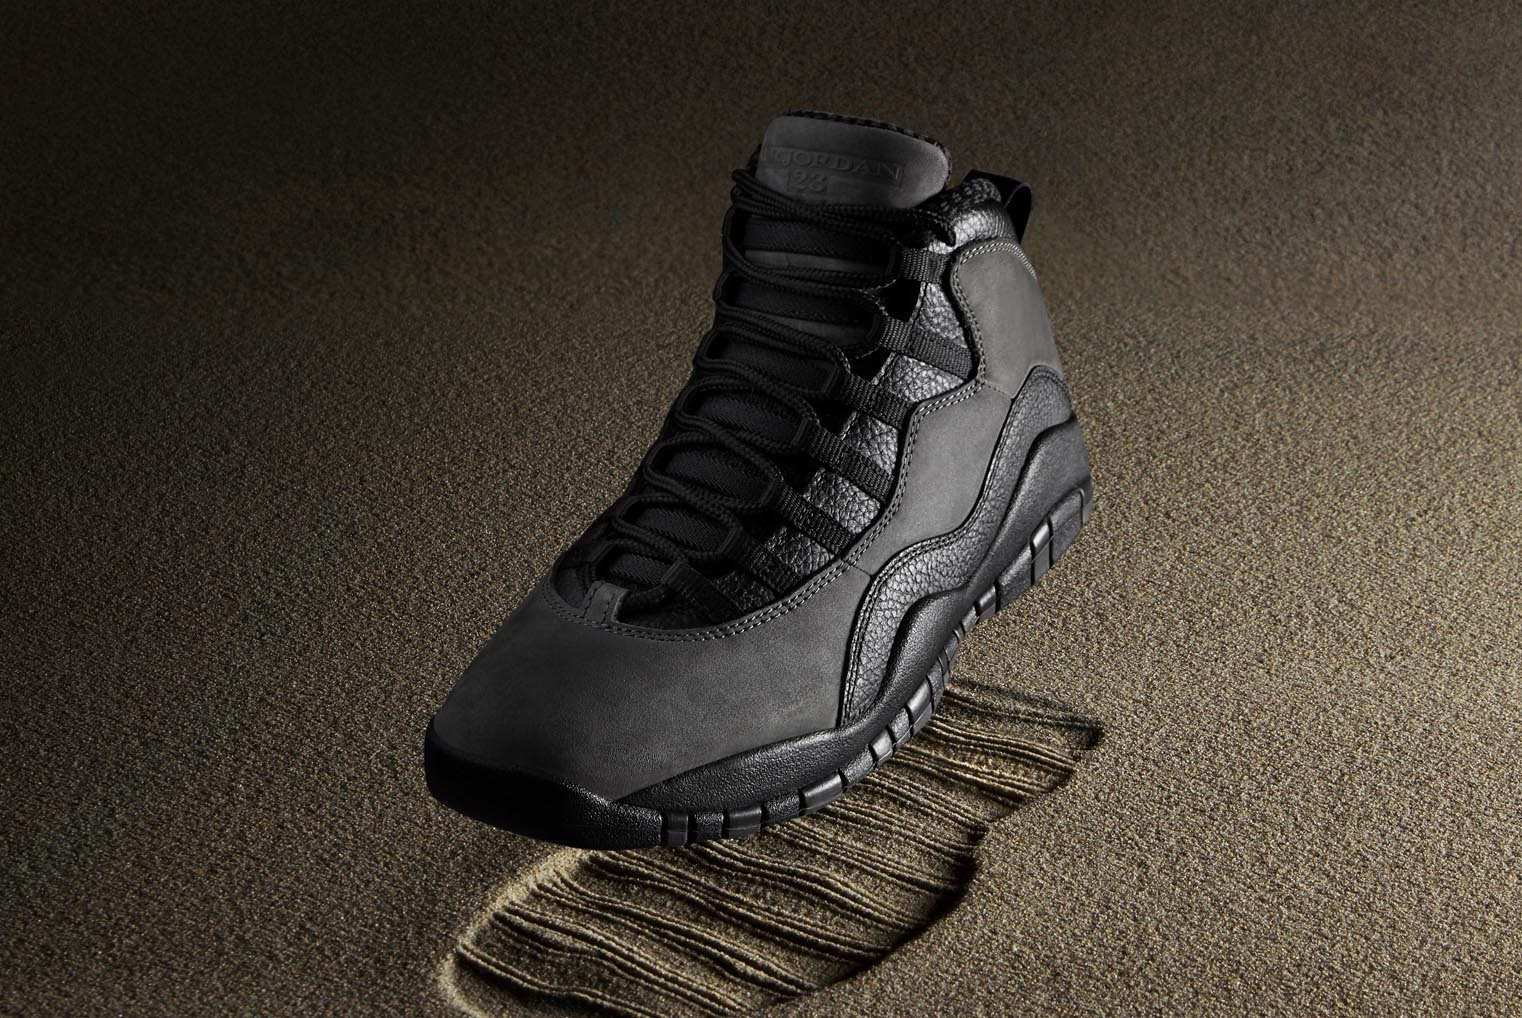 The Air Jordan 10 'Shadow' Gets Official Release Date